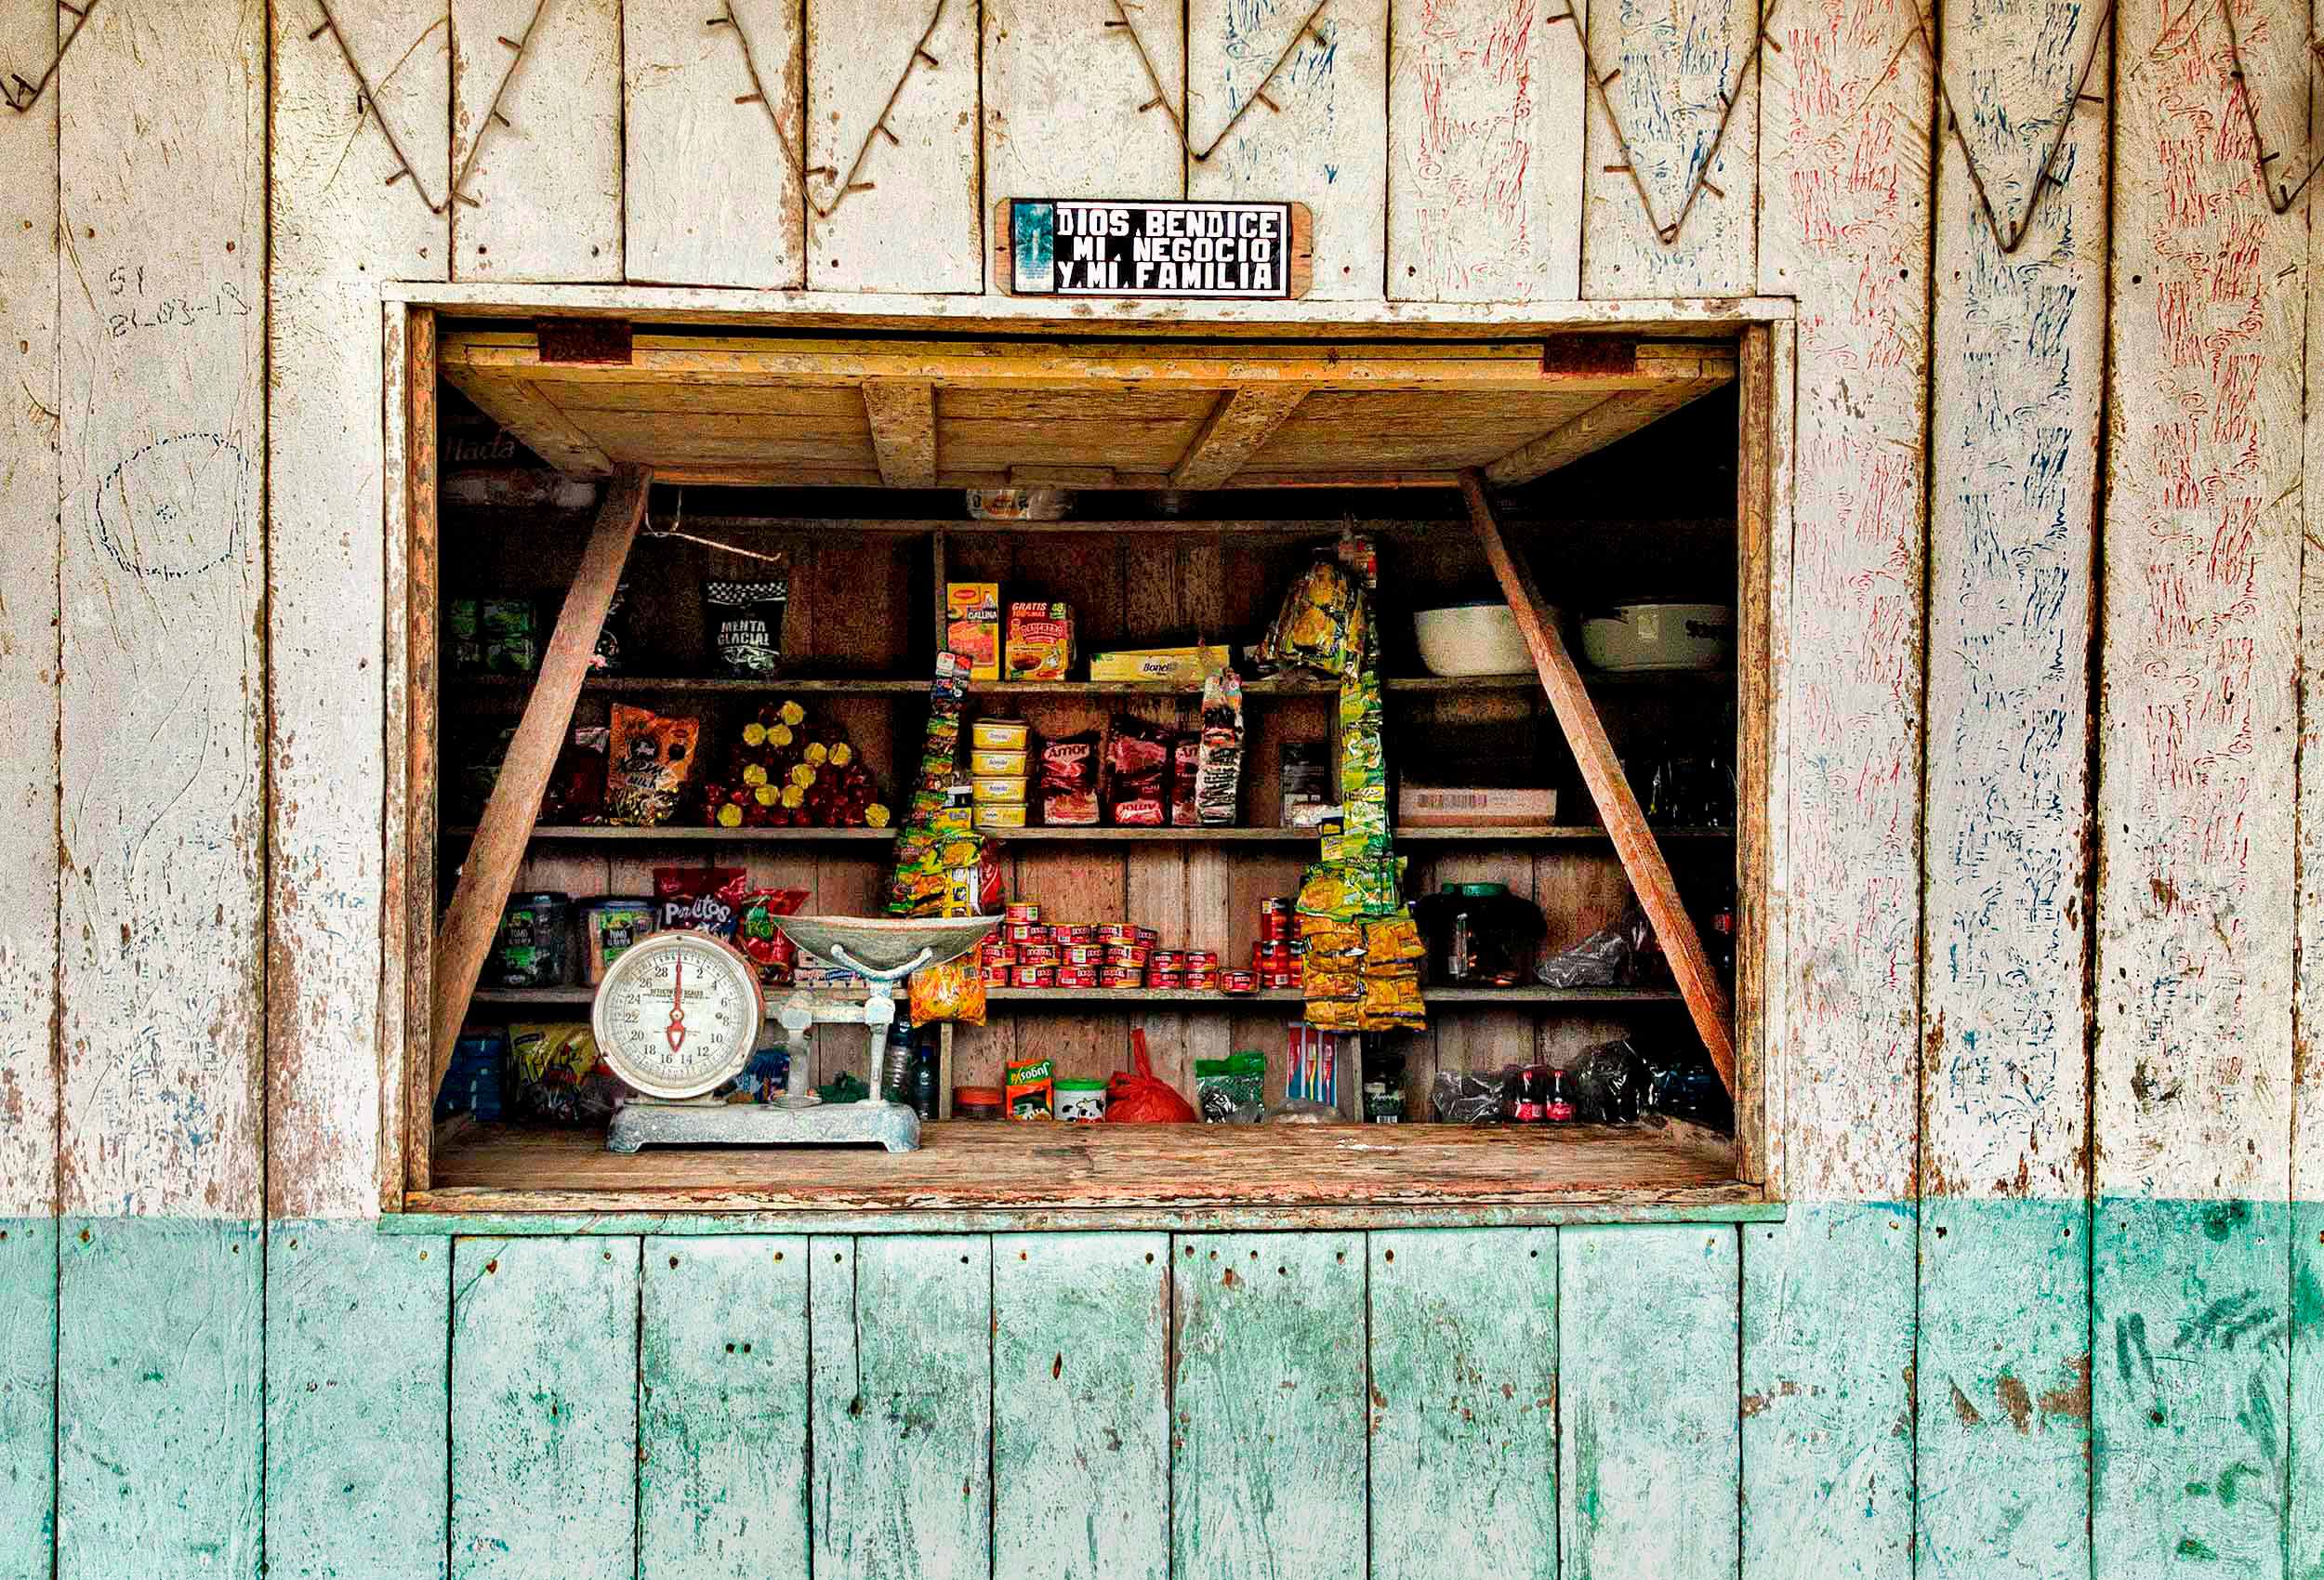 a-rural-food-shop-in-mompiche-ecuador-by-travel-photographer-John-Hryniuk